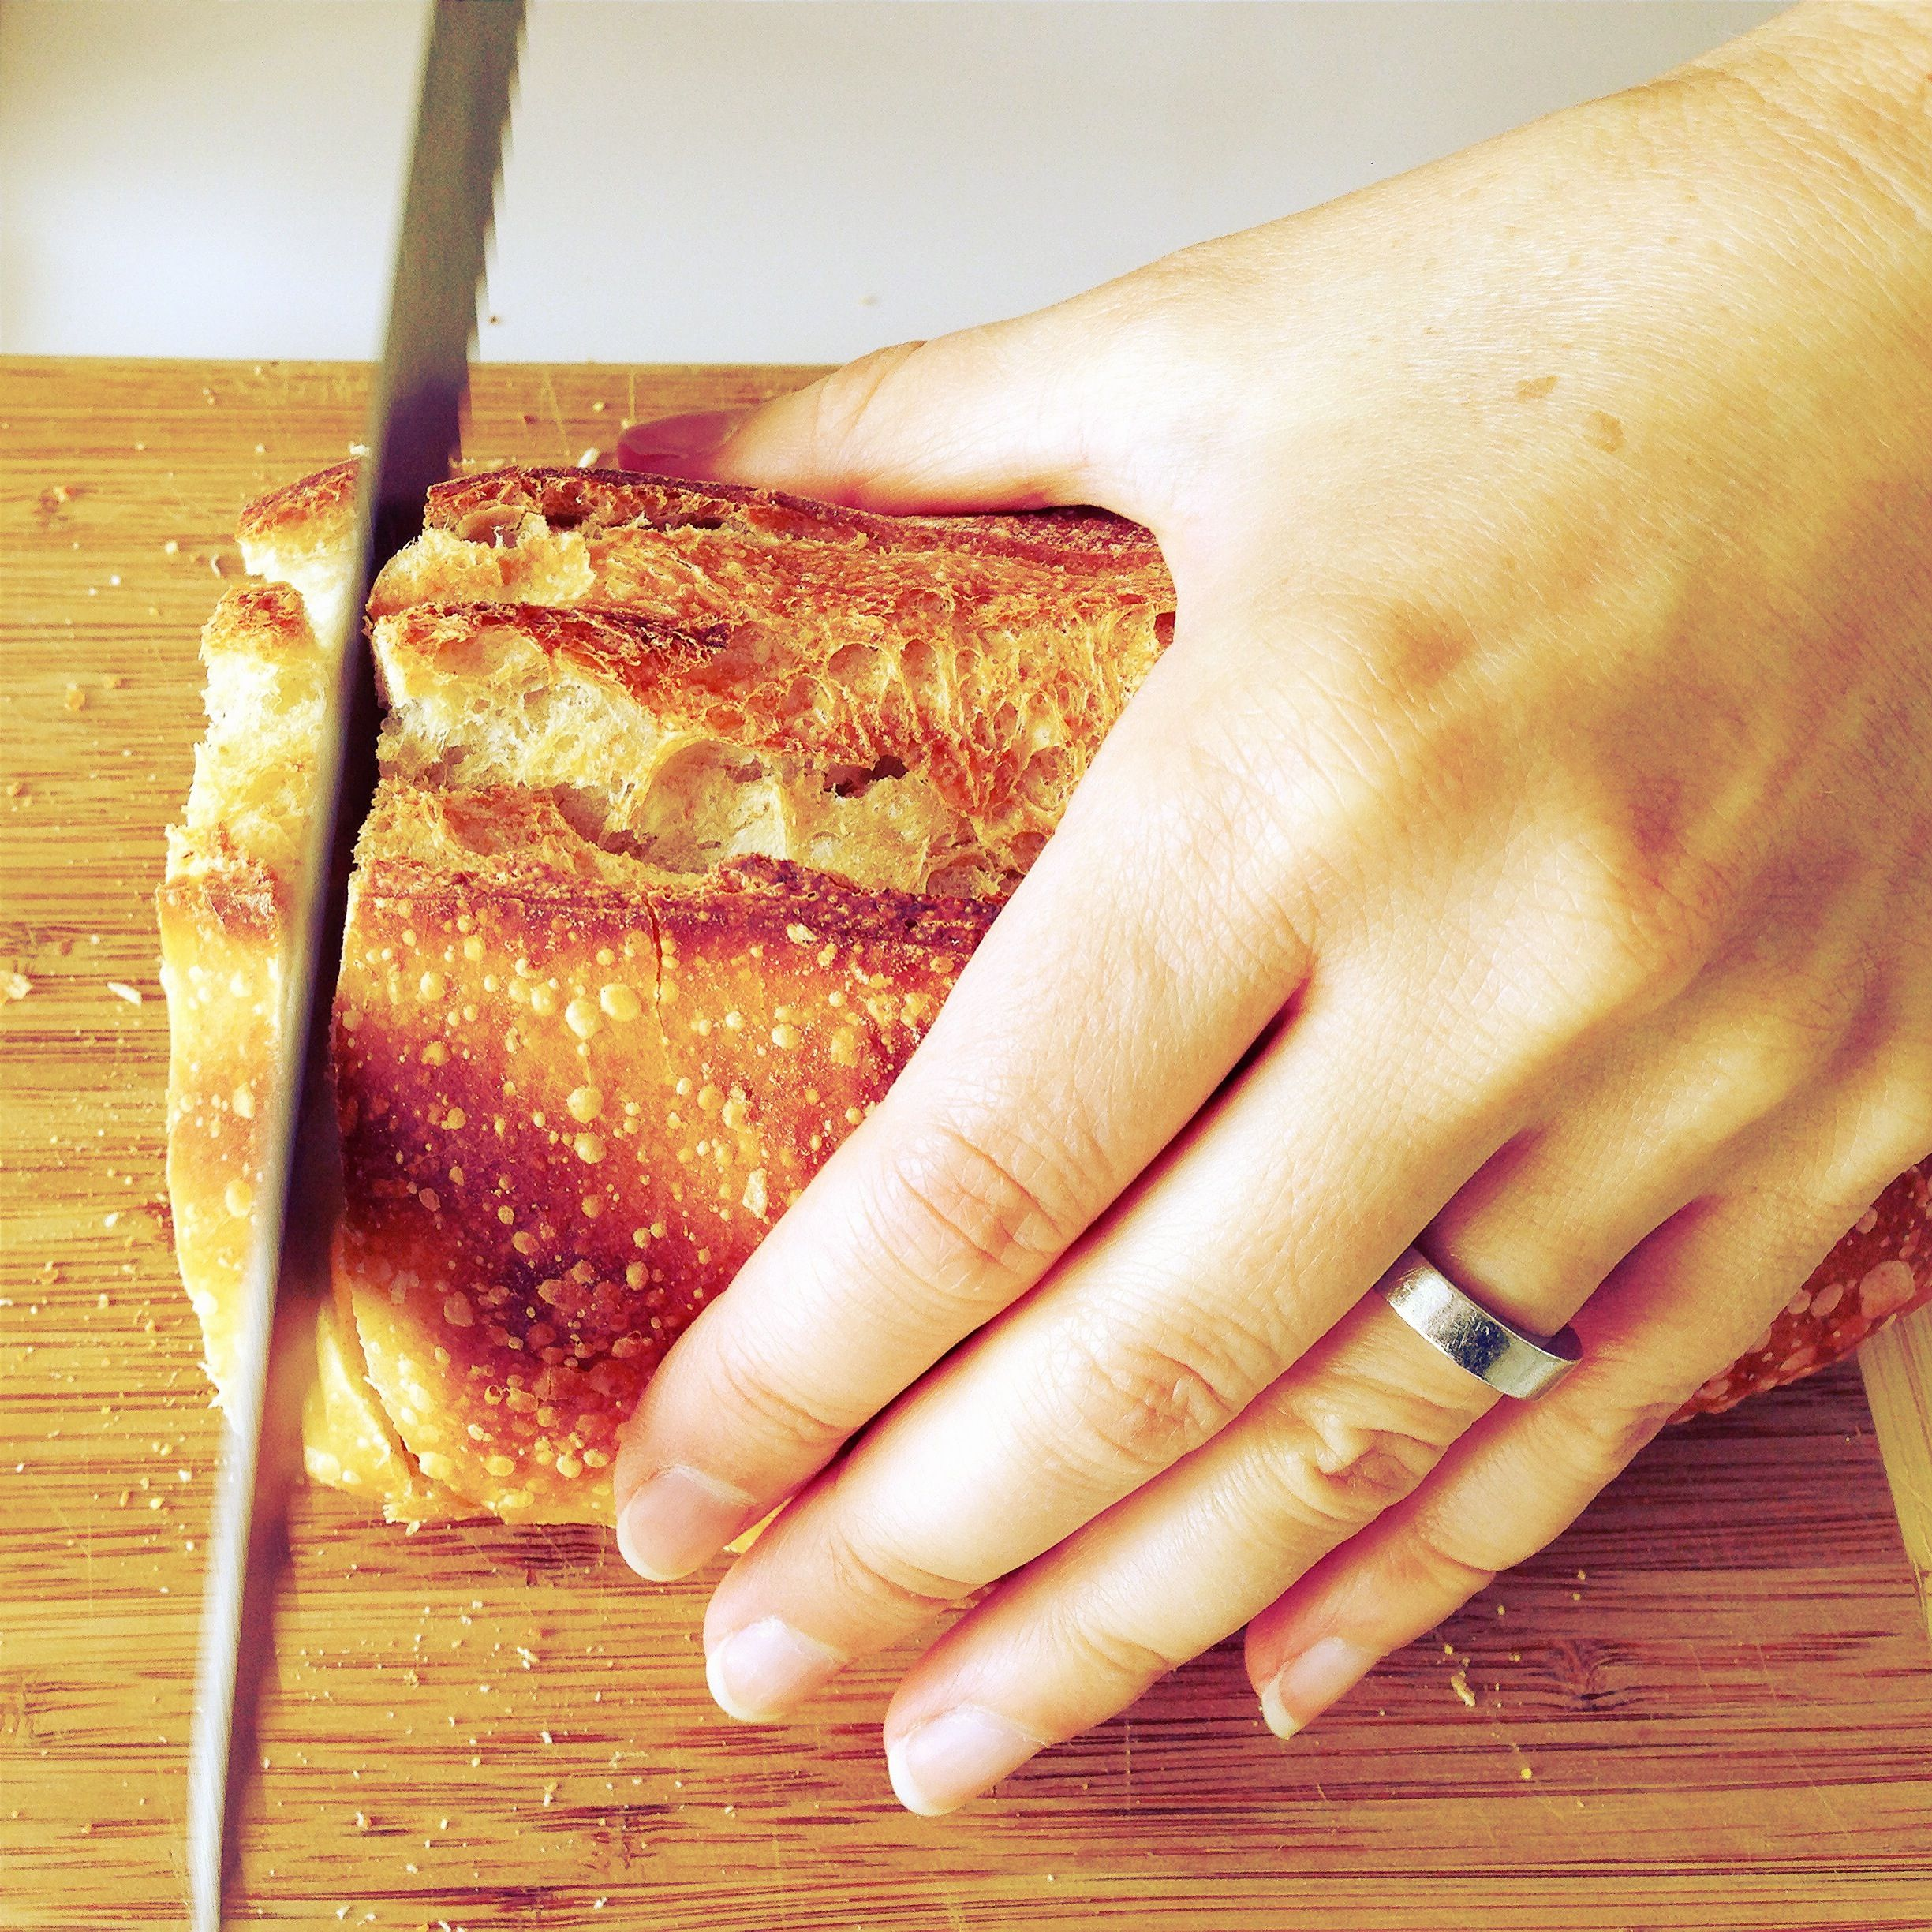 What Knife Is Best For Slicing Bread